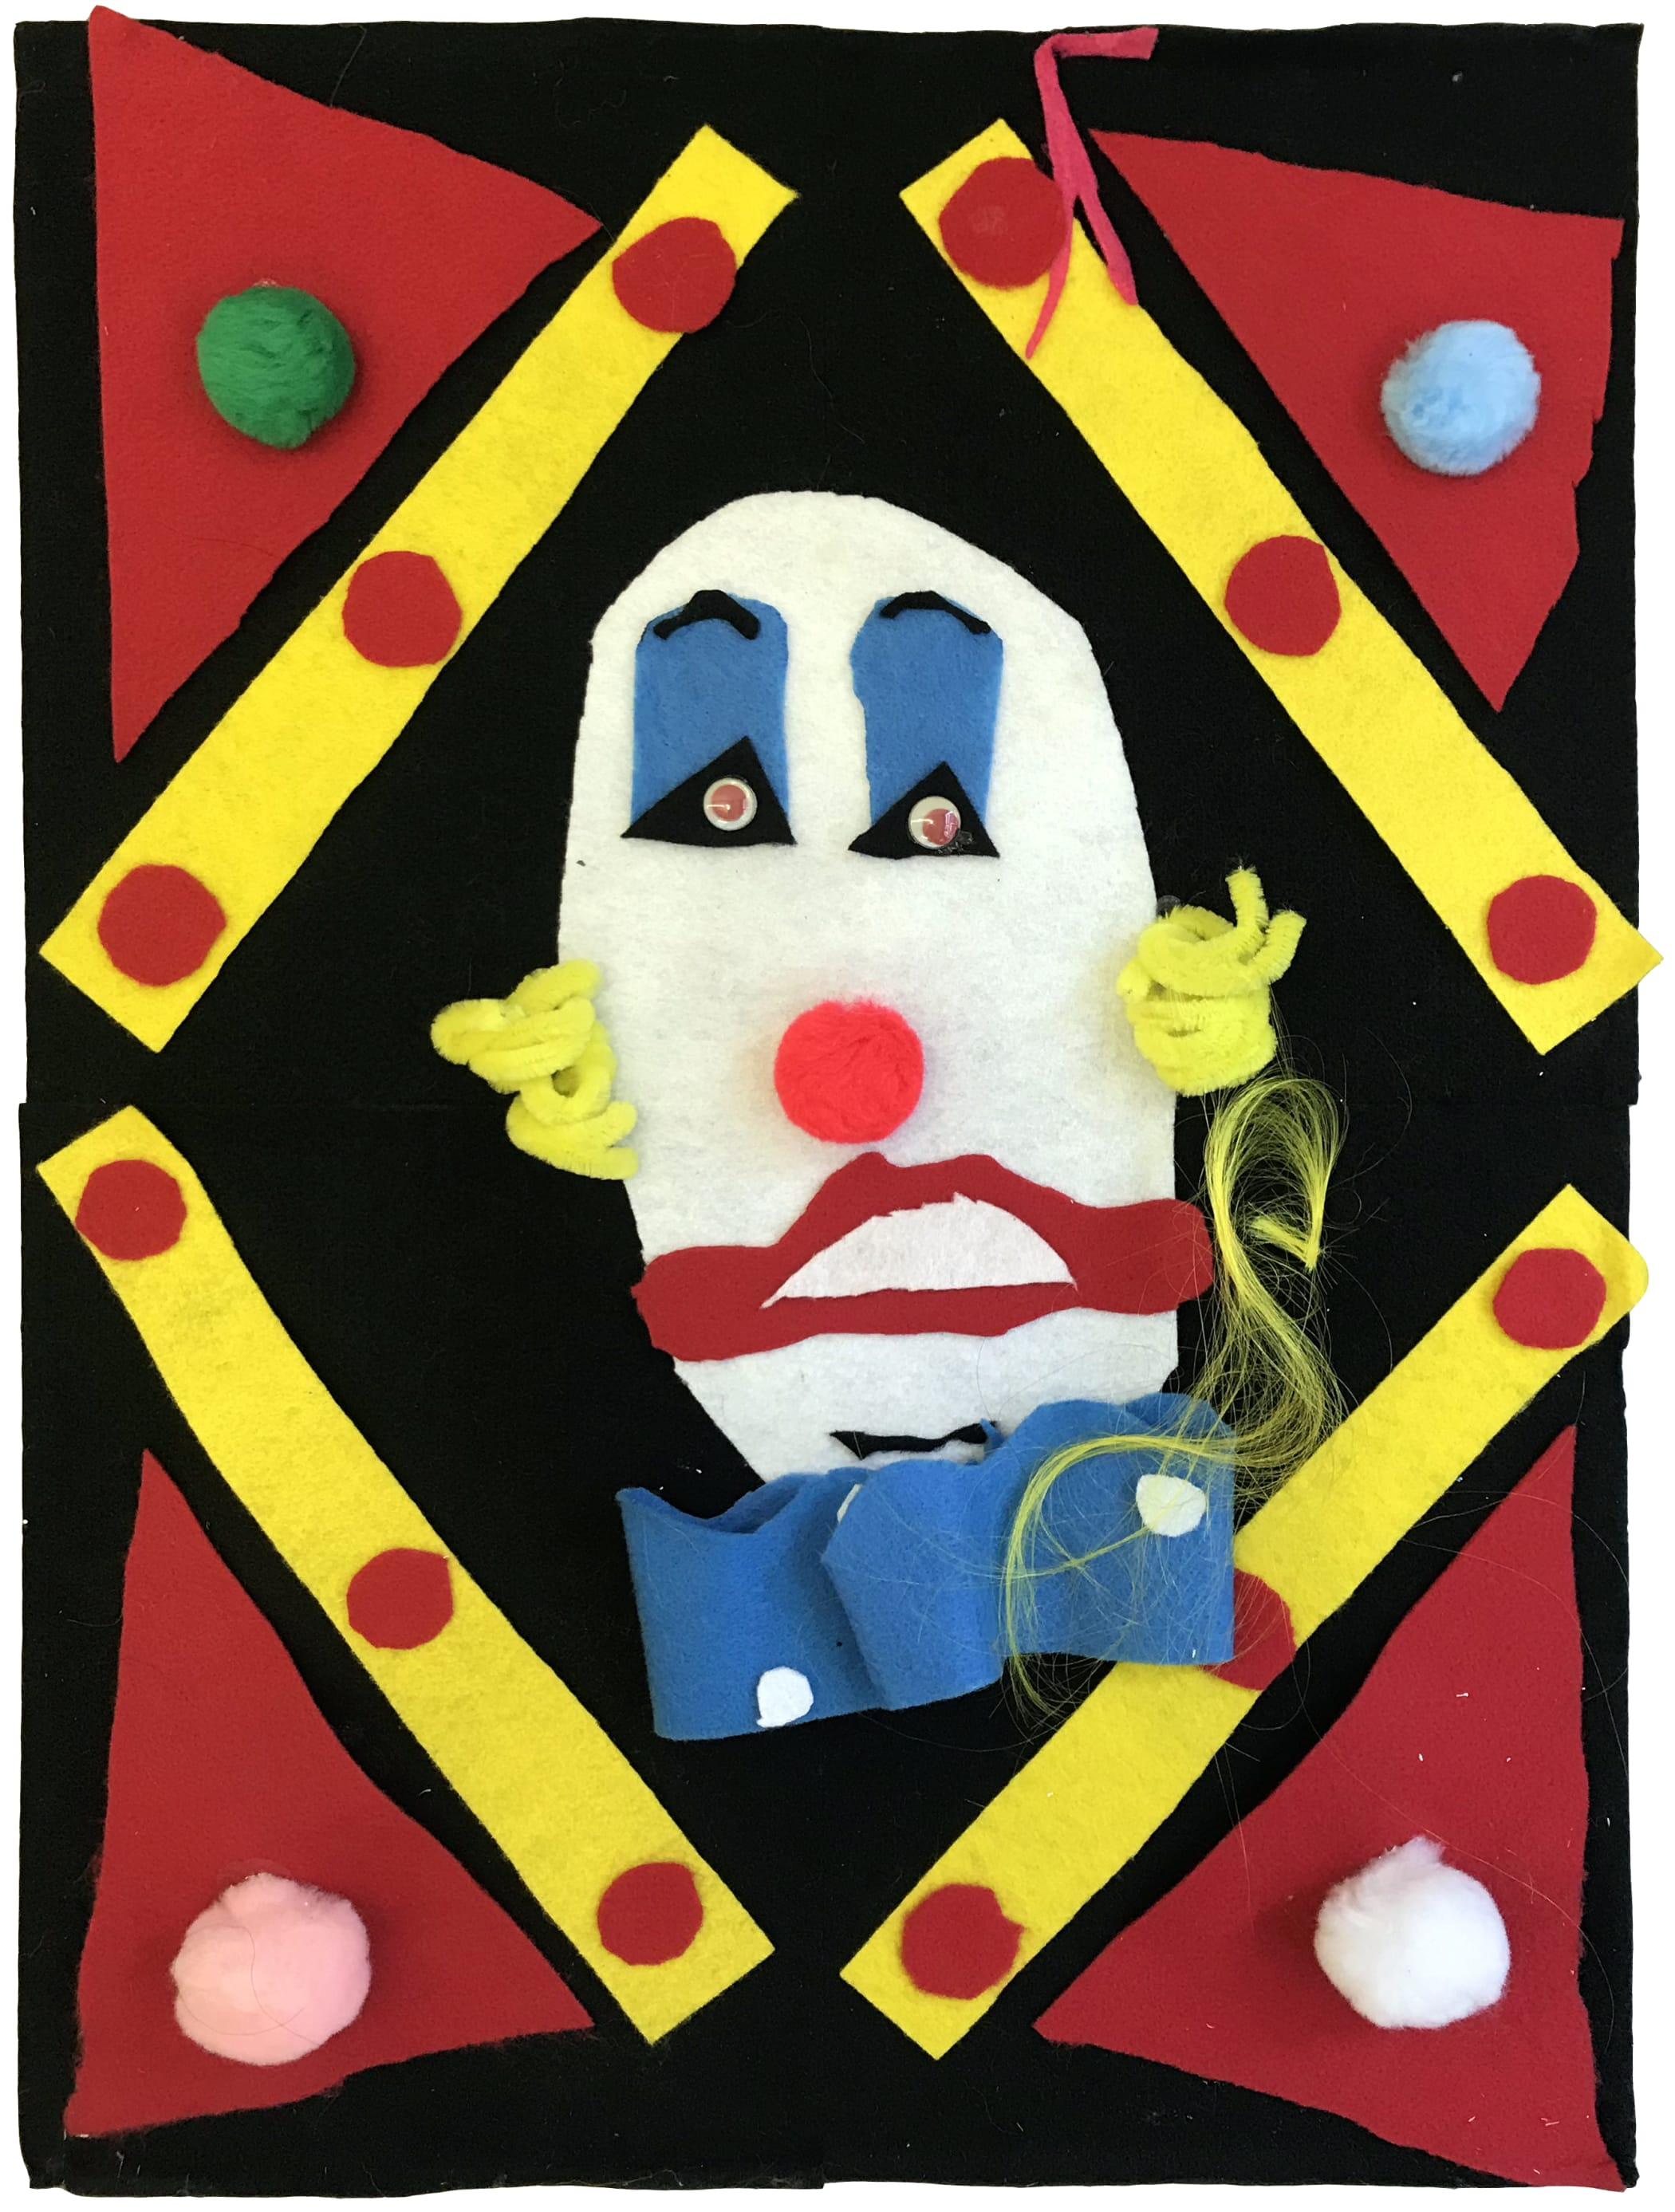 Brian A. Whiteley, Party Clown, 2017